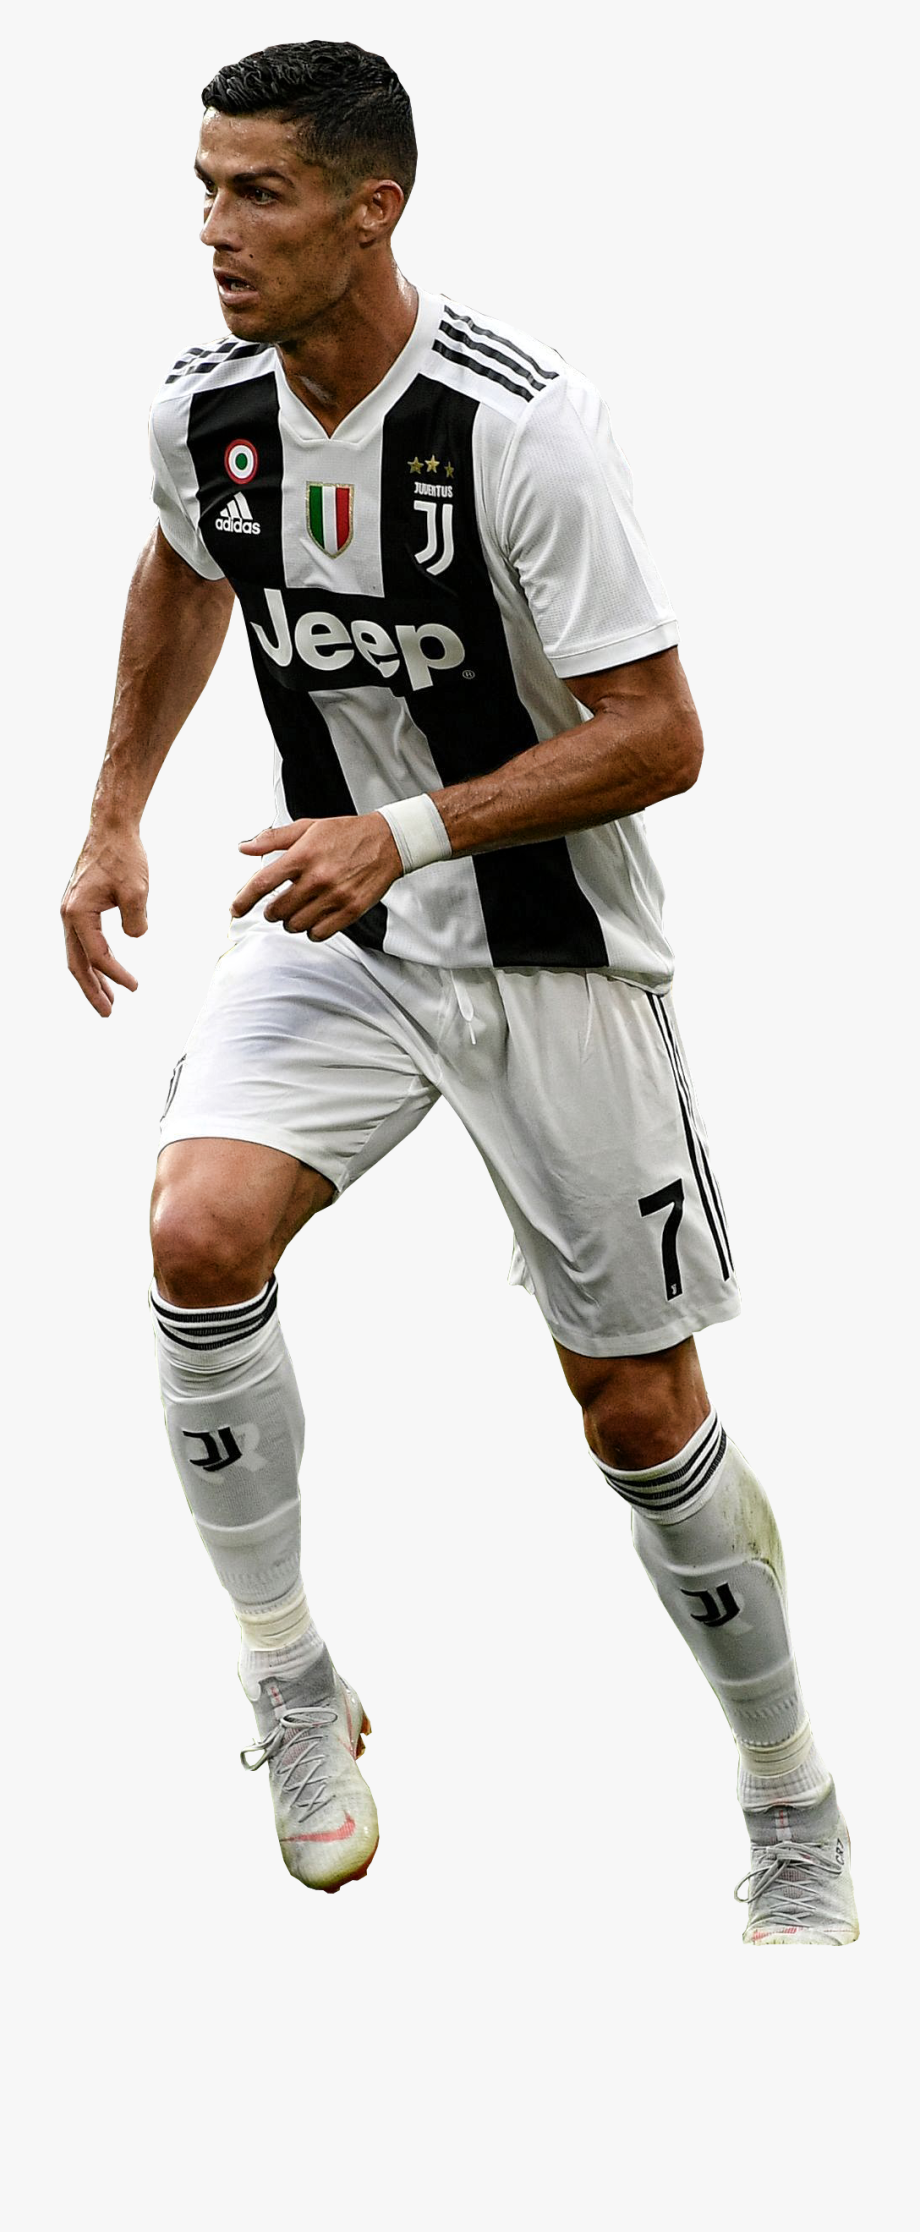 Cristiano Ronaldo Juventus 2021 Wallpapers 920x2232